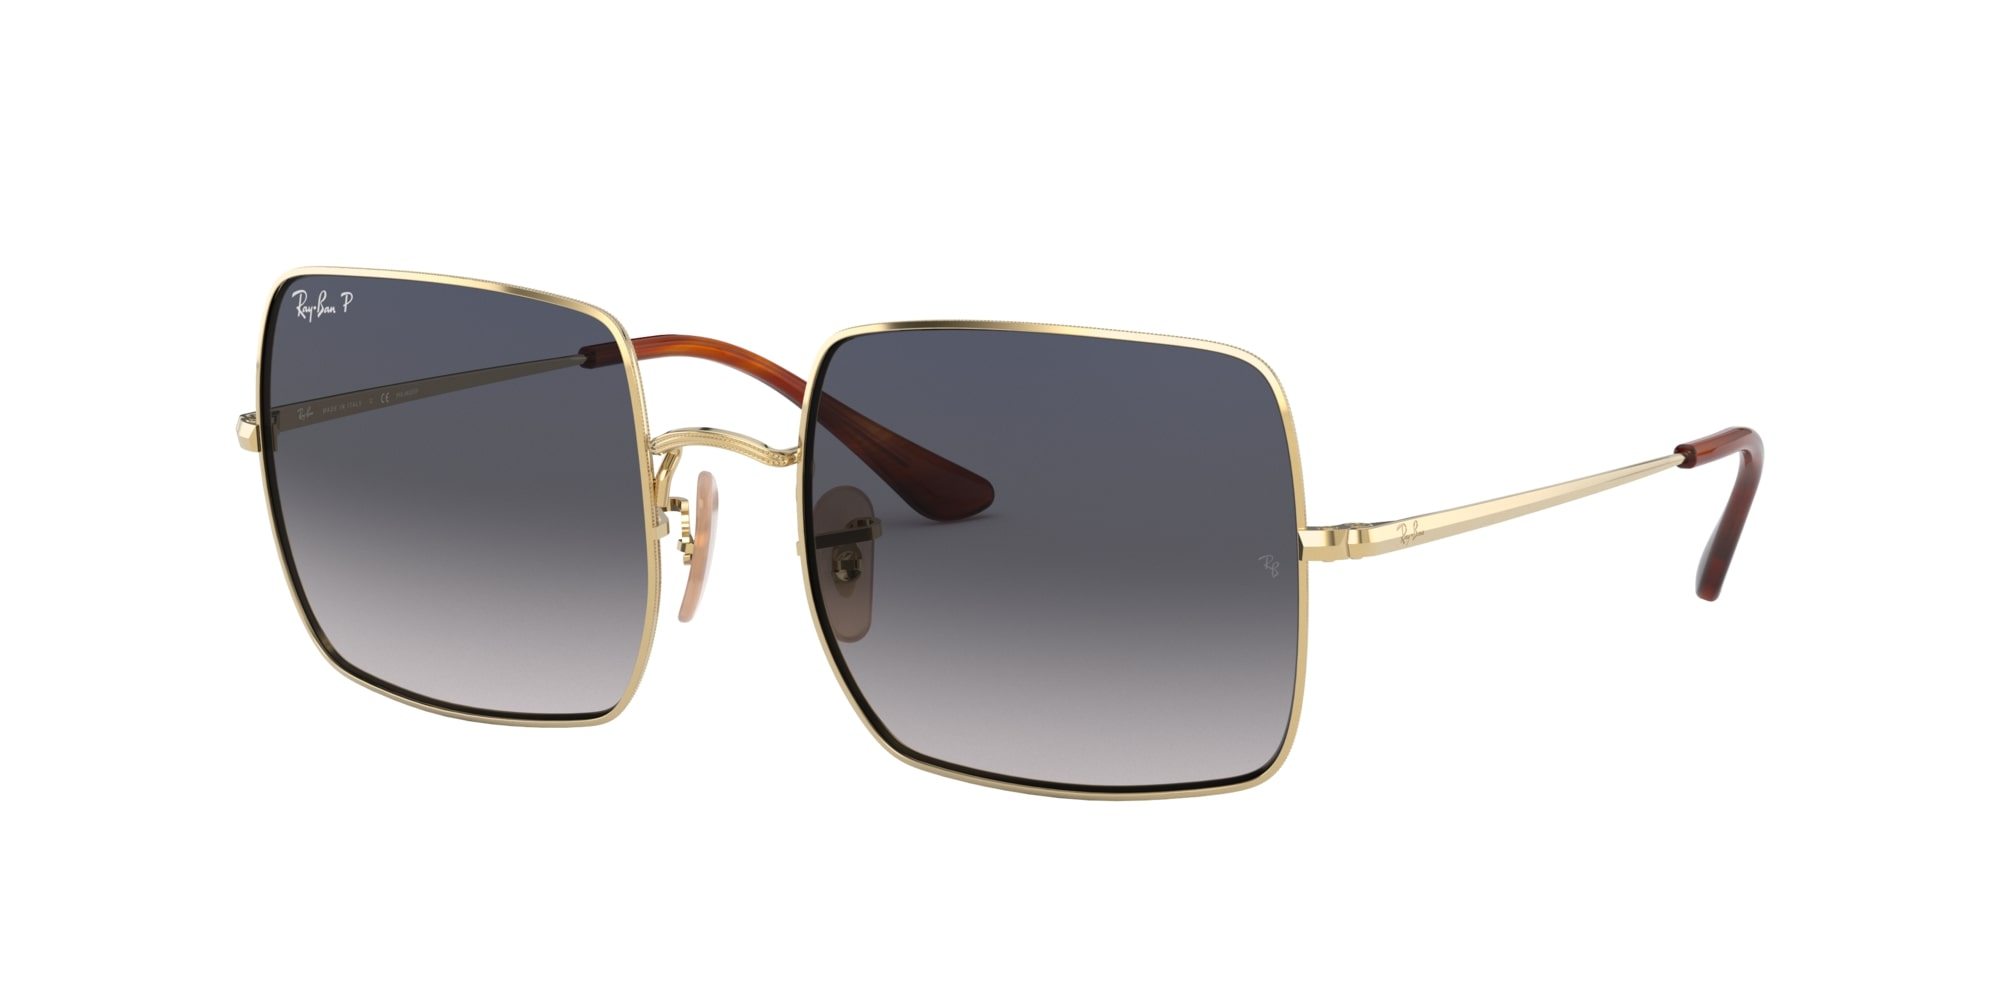 Ray Ban Square 1971 Classic solbriller